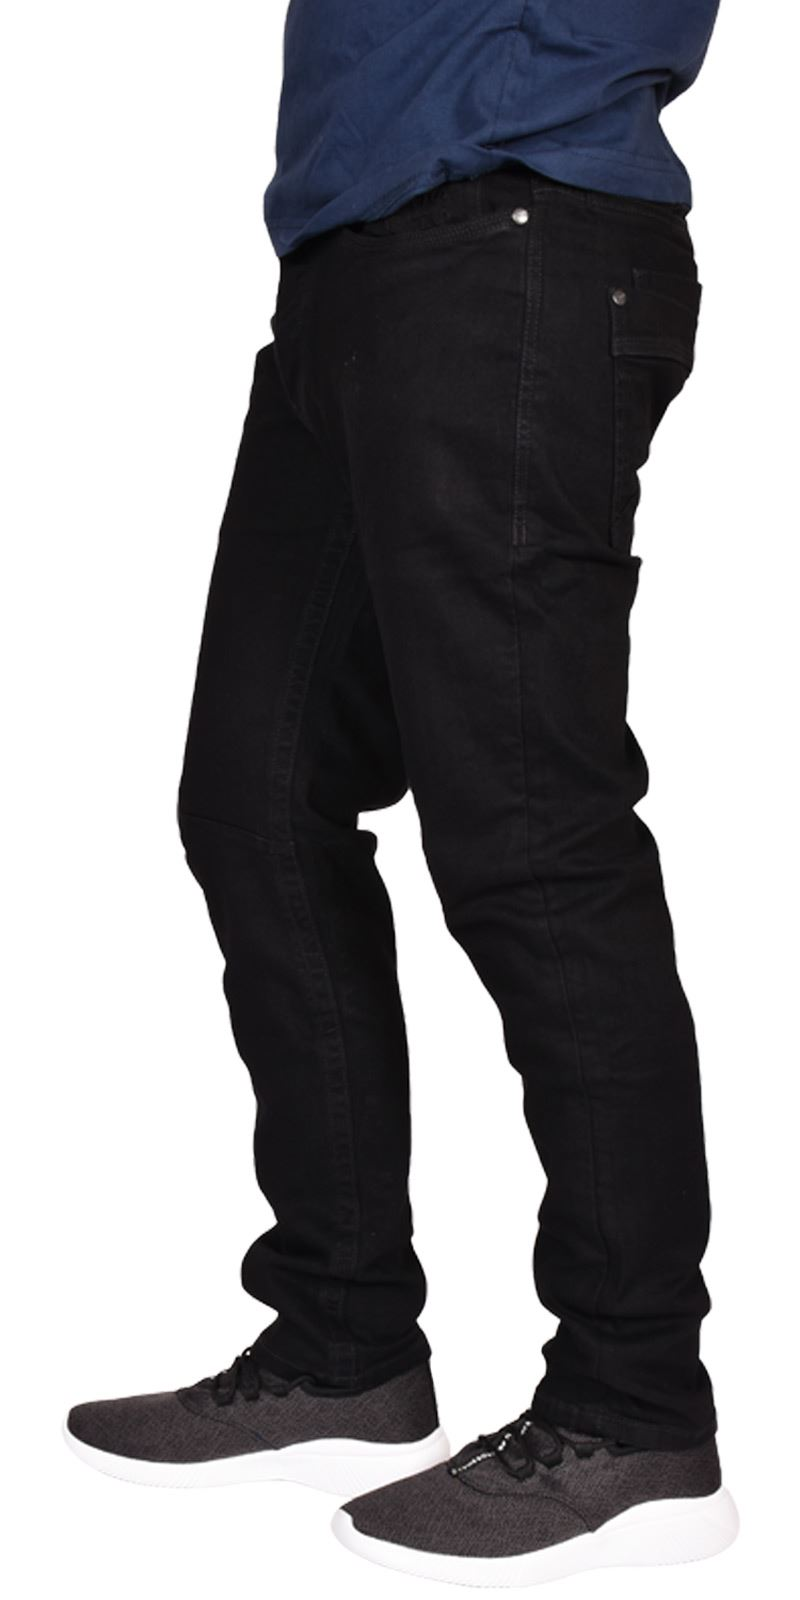 Mens-Crosshatch-Branded-Jeans-Stretch-Slim-Fit-Straight-Leg-Cotton-Denim-Pants